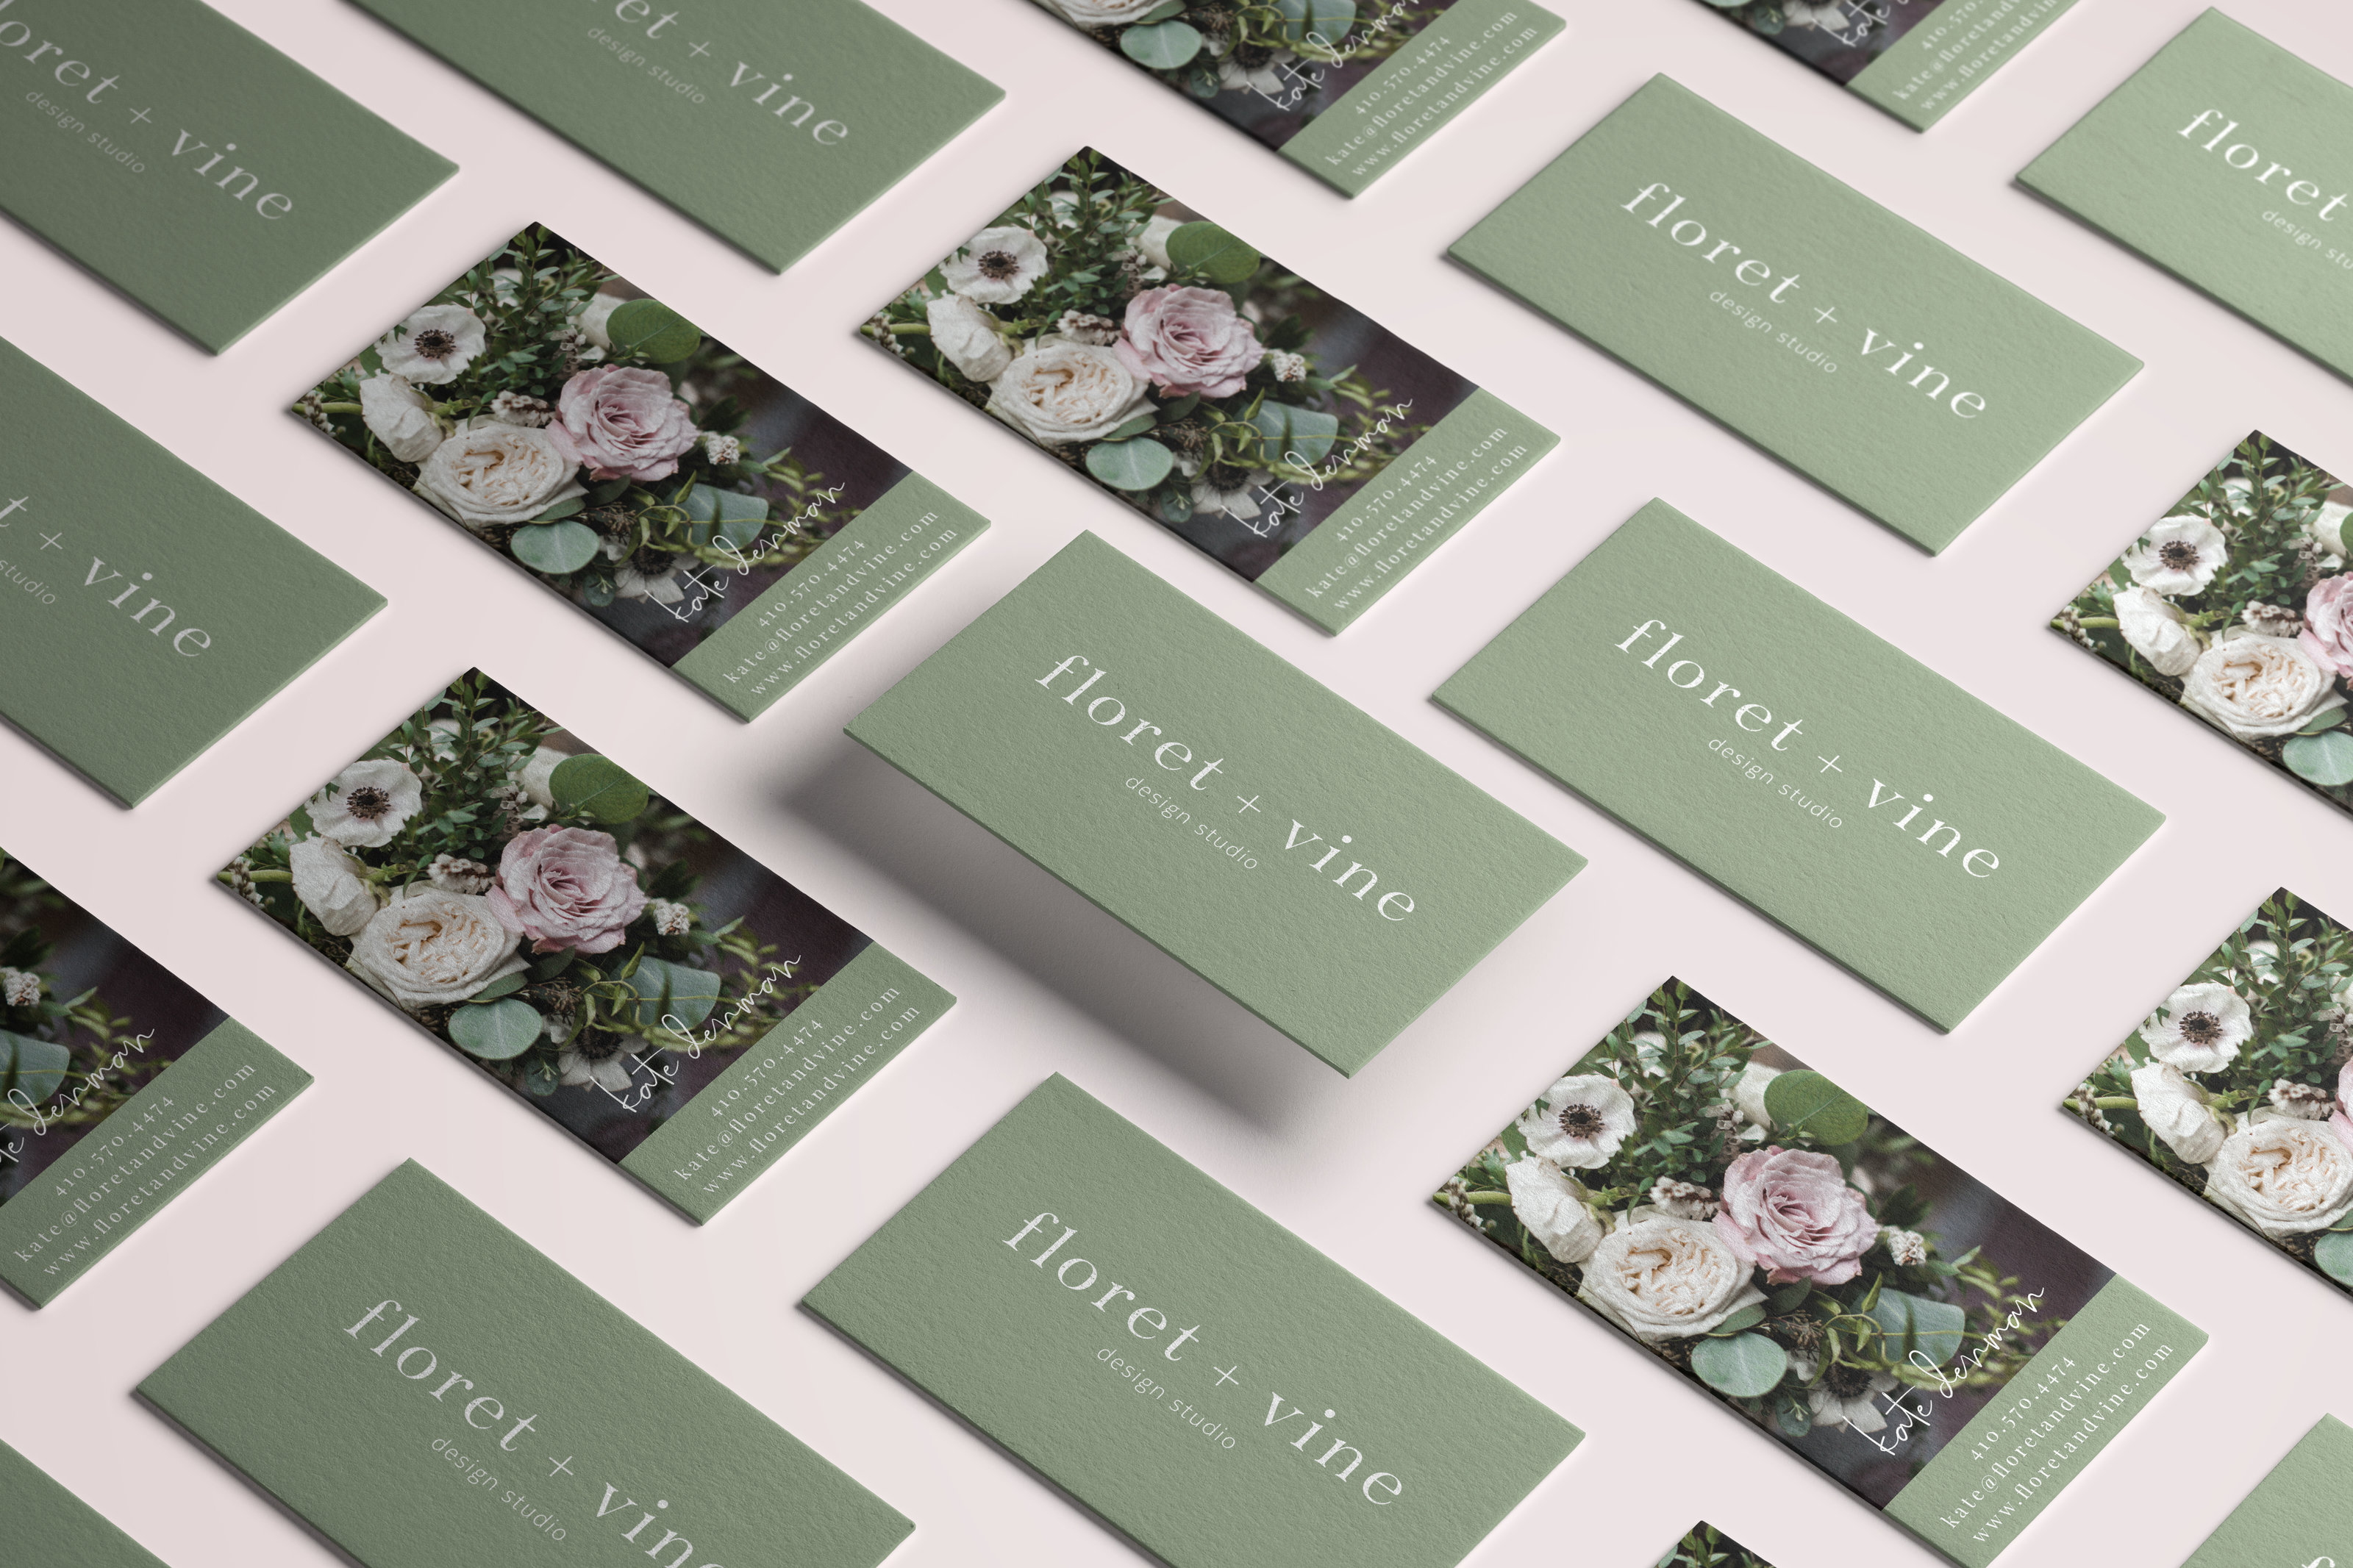 Brand & Web Design for Floret + Vine - Florist Branding, Floral Design Branding, Brand and Web Design for Florist